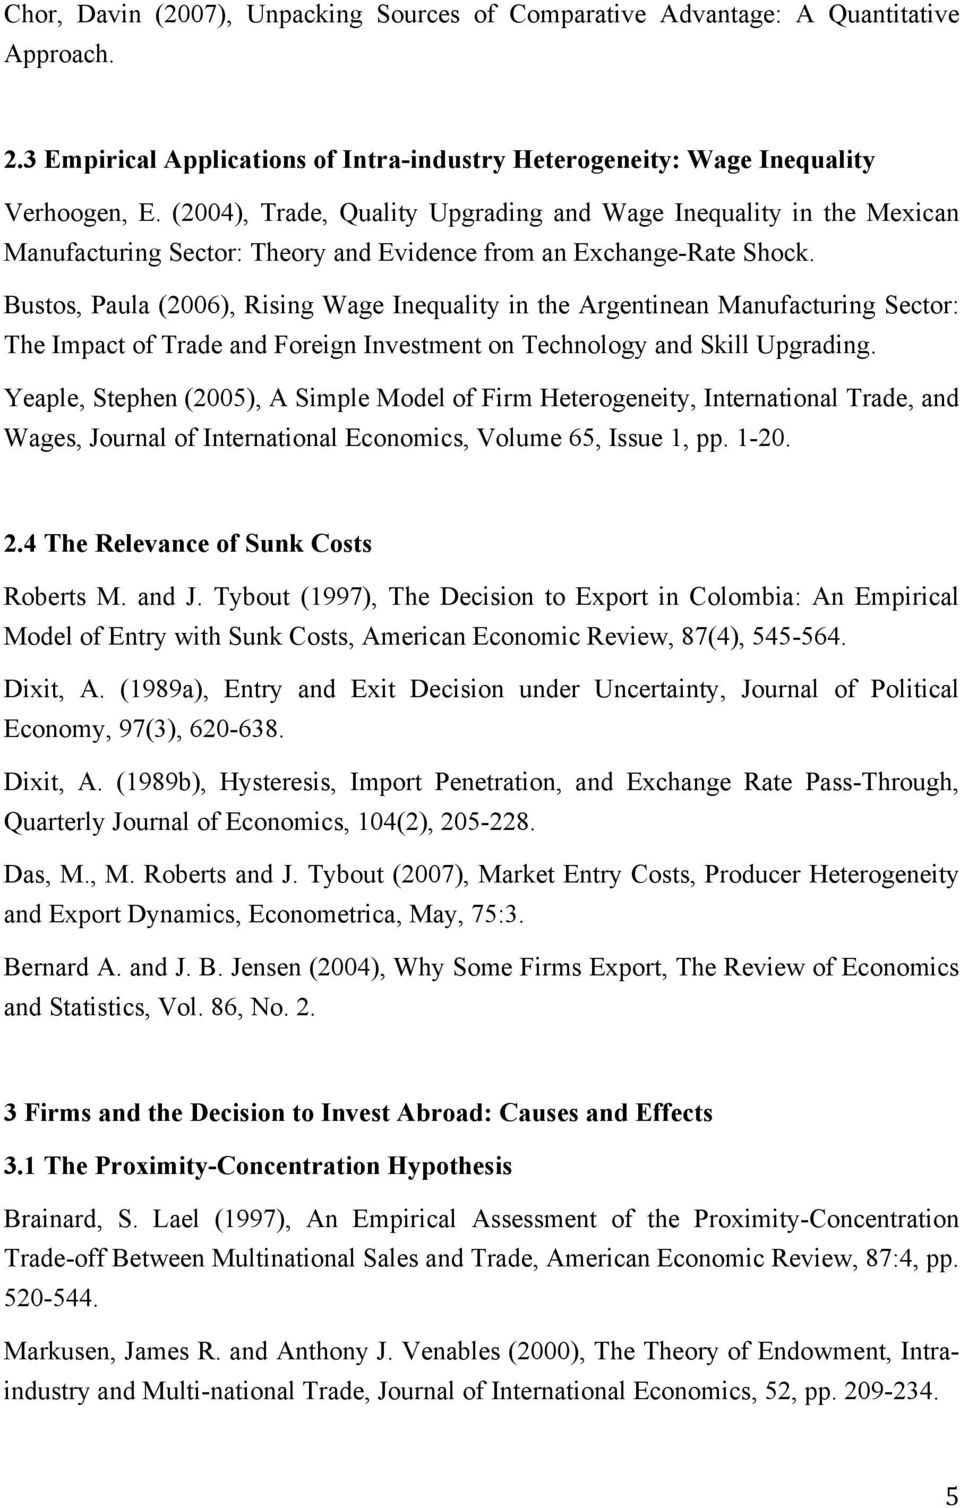 Bustos, Paula (2006), Rising Wage Inequality in the Argentinean Manufacturing Sector: The Impact of Trade and Foreign Investment on Technology and Skill Upgrading.